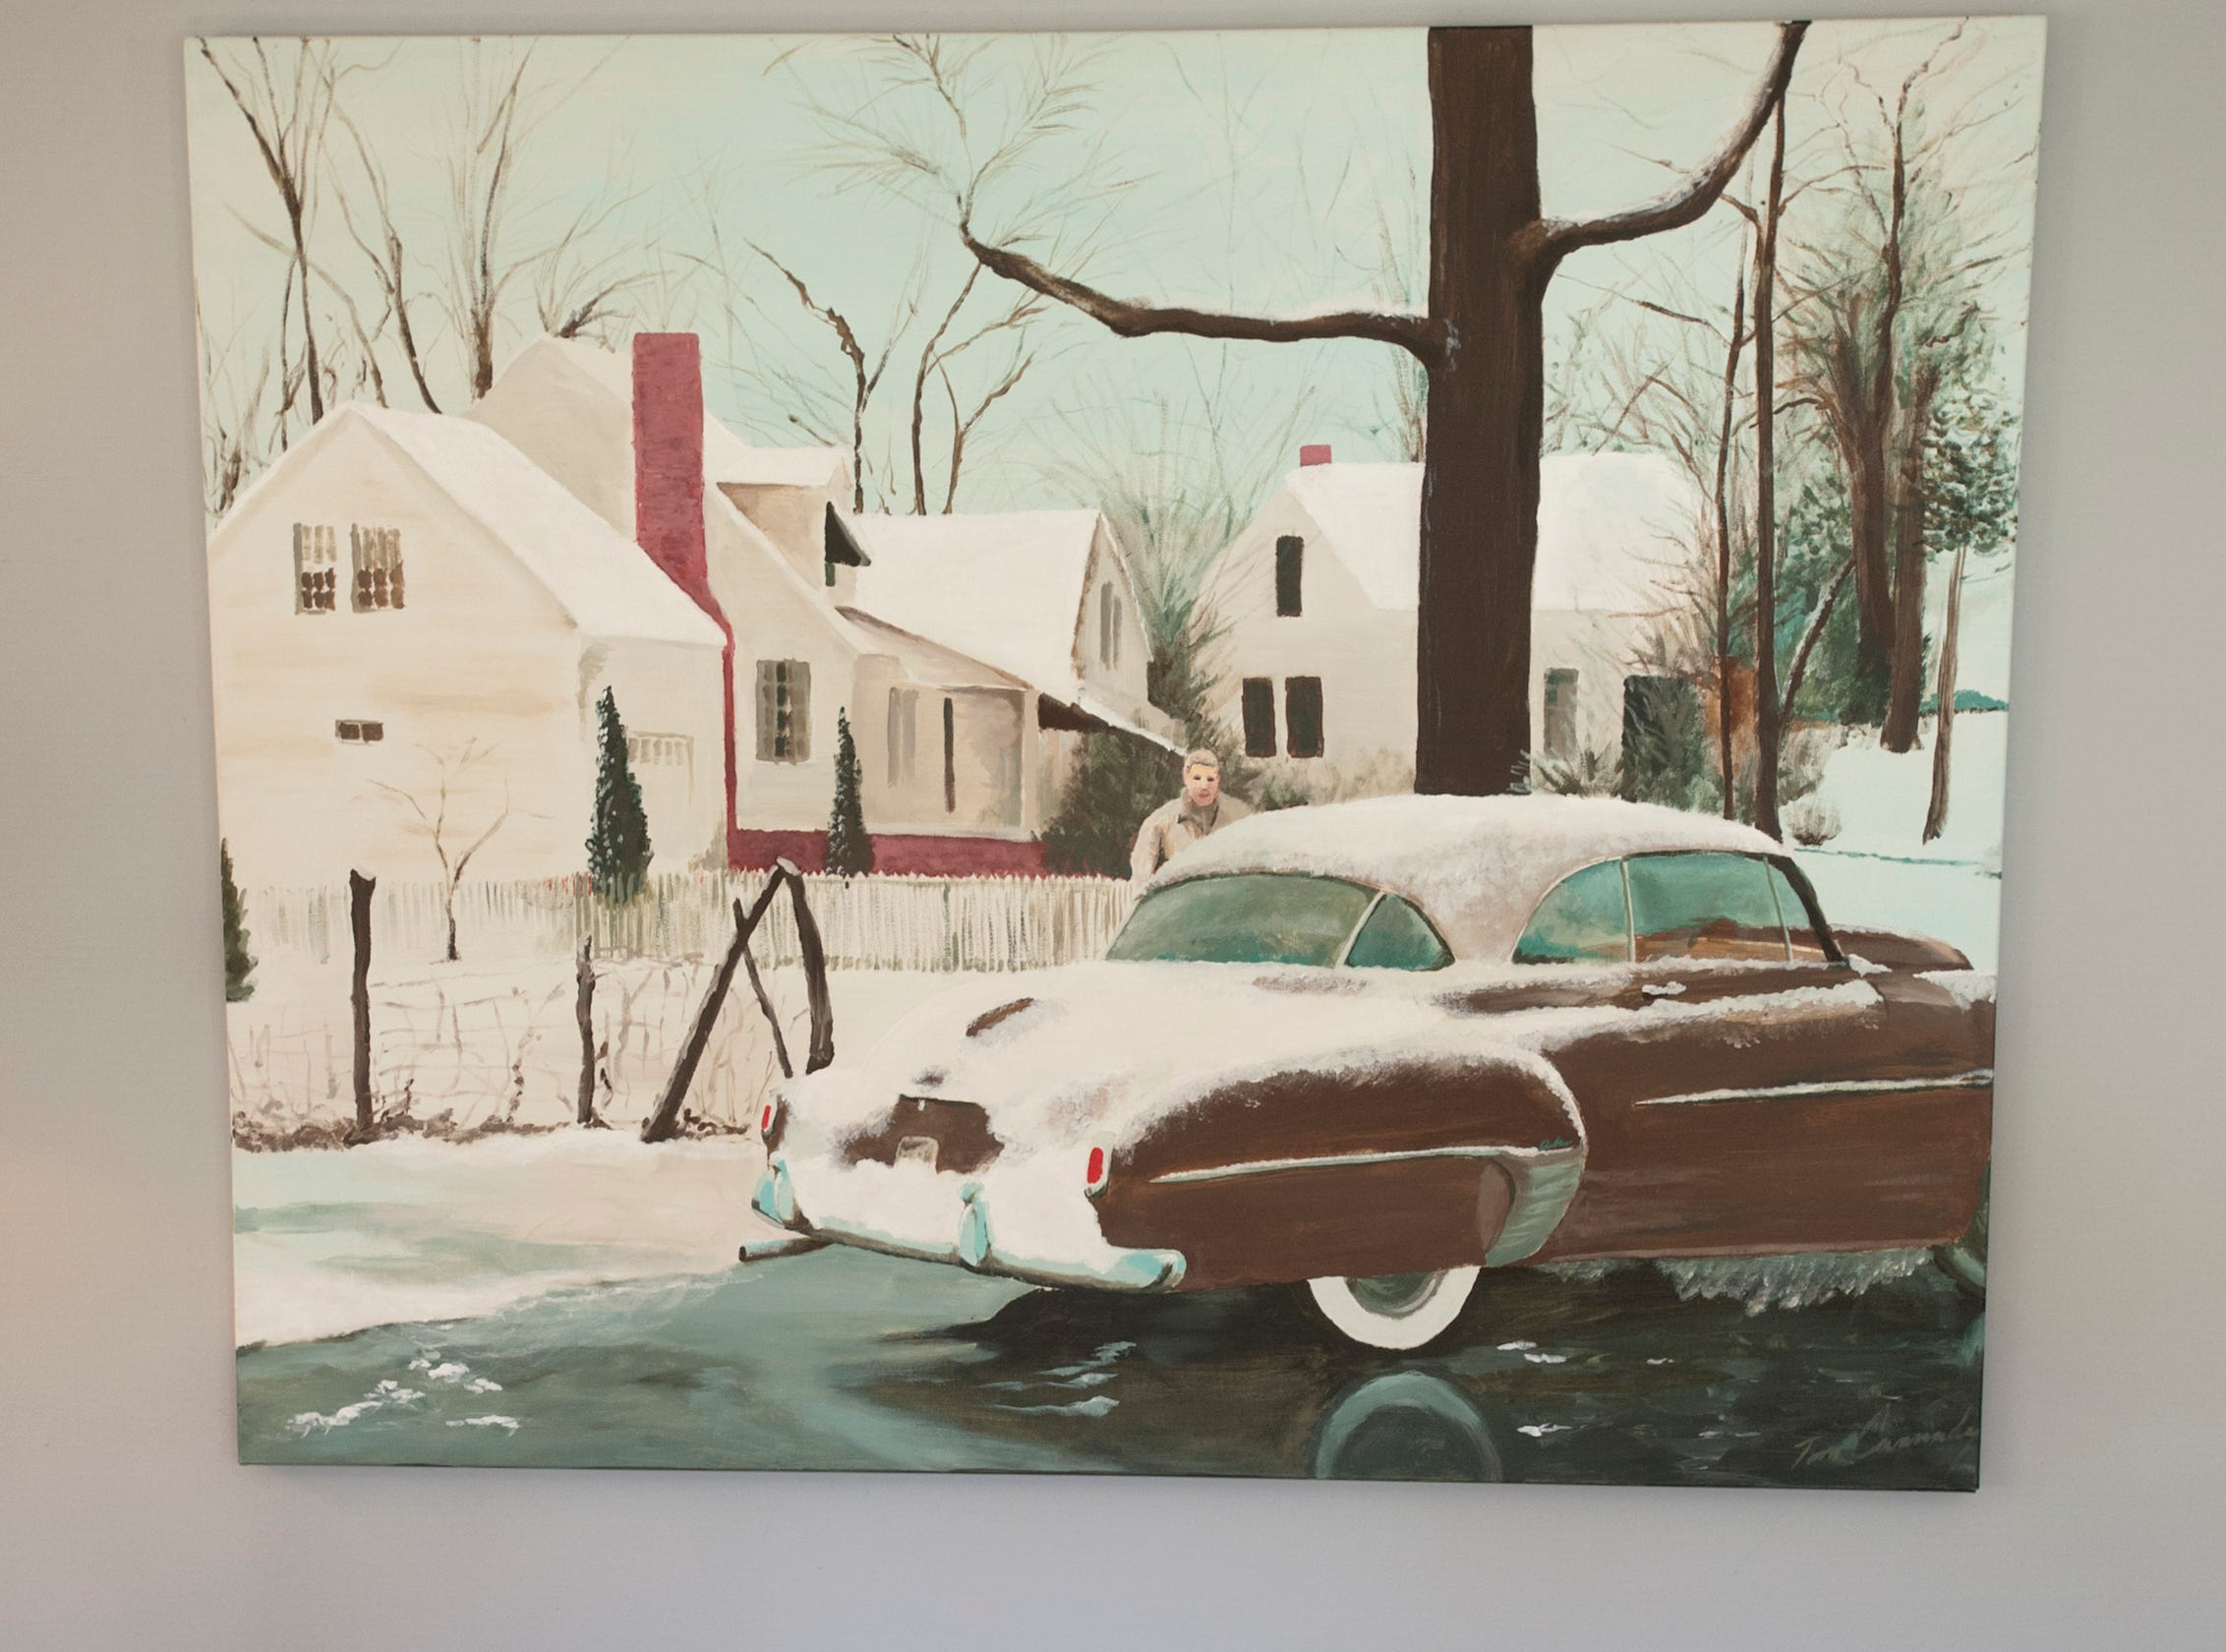 """Cannady's painting called """"Federberg,"""" reproduced a scene of Cannady's dad caught in an old photograph. It is in the home's living room.10 December 2018"""